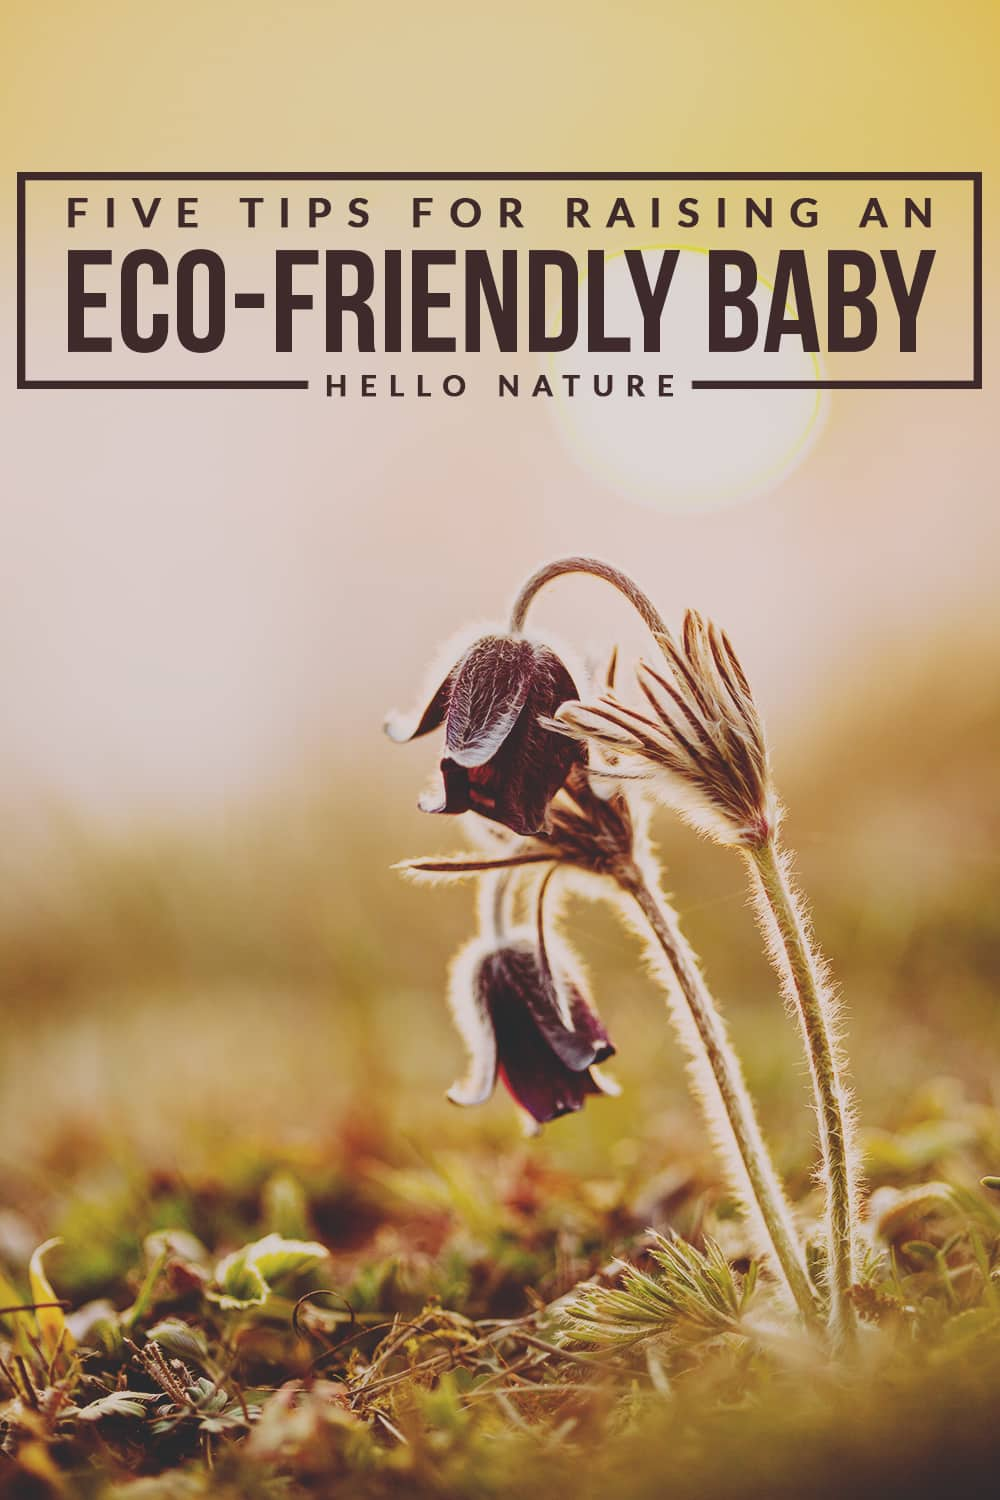 These five simple and inexpensive tips for raising an eco-friendly baby will help you leave less of an impact on our planet in no time.